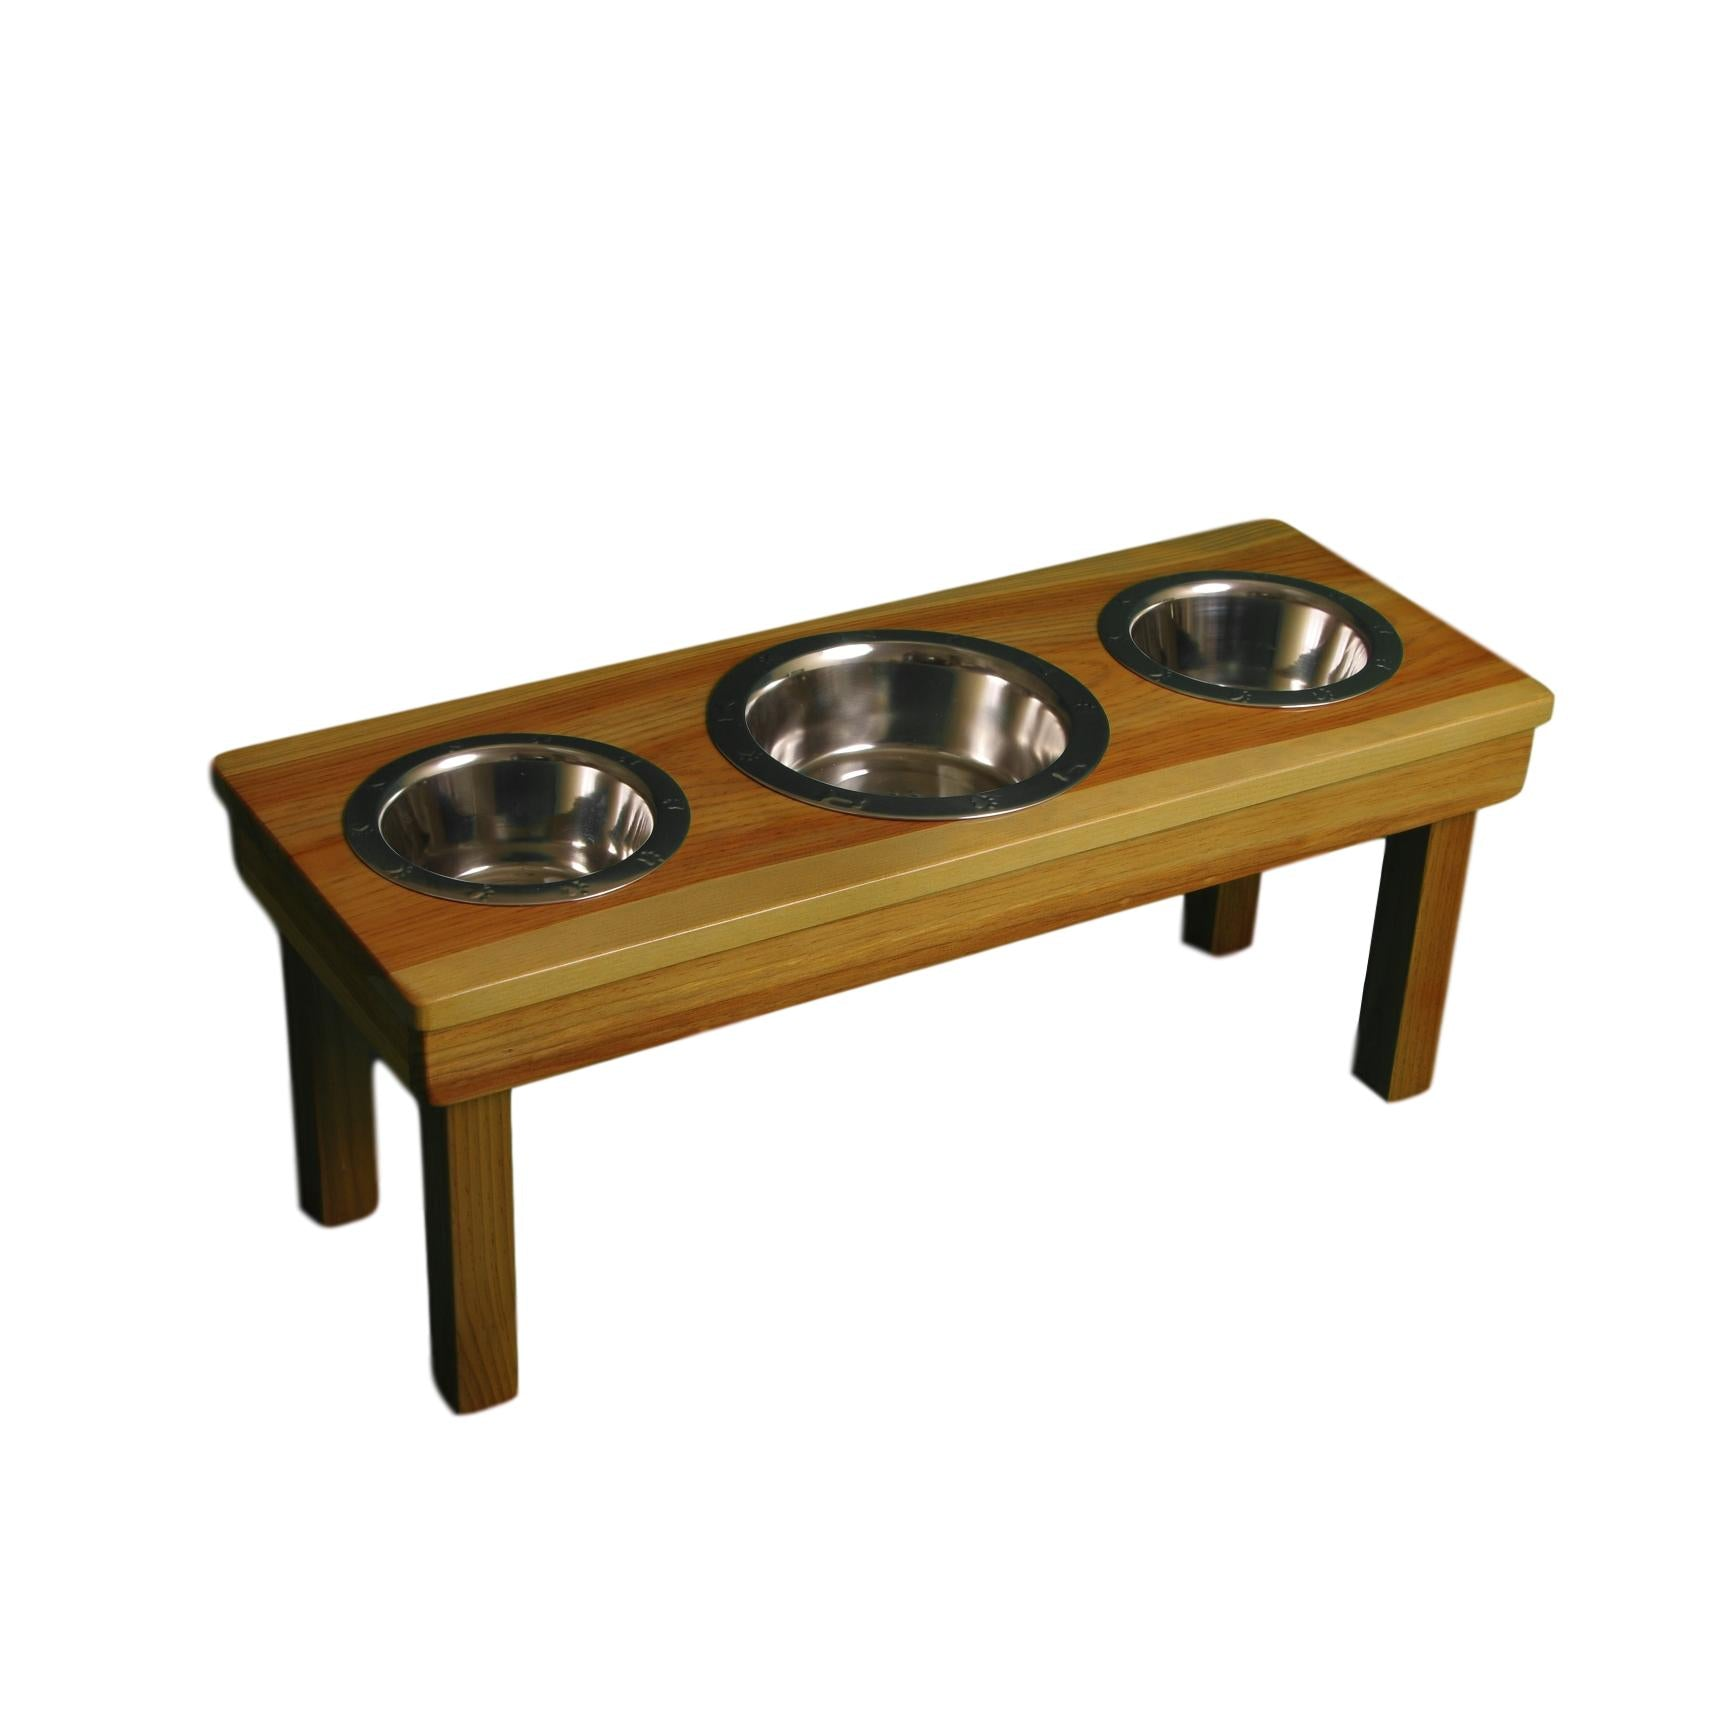 amazon feeder single raised tall bowl diner dog bowls com dp bone supplies pet elevated